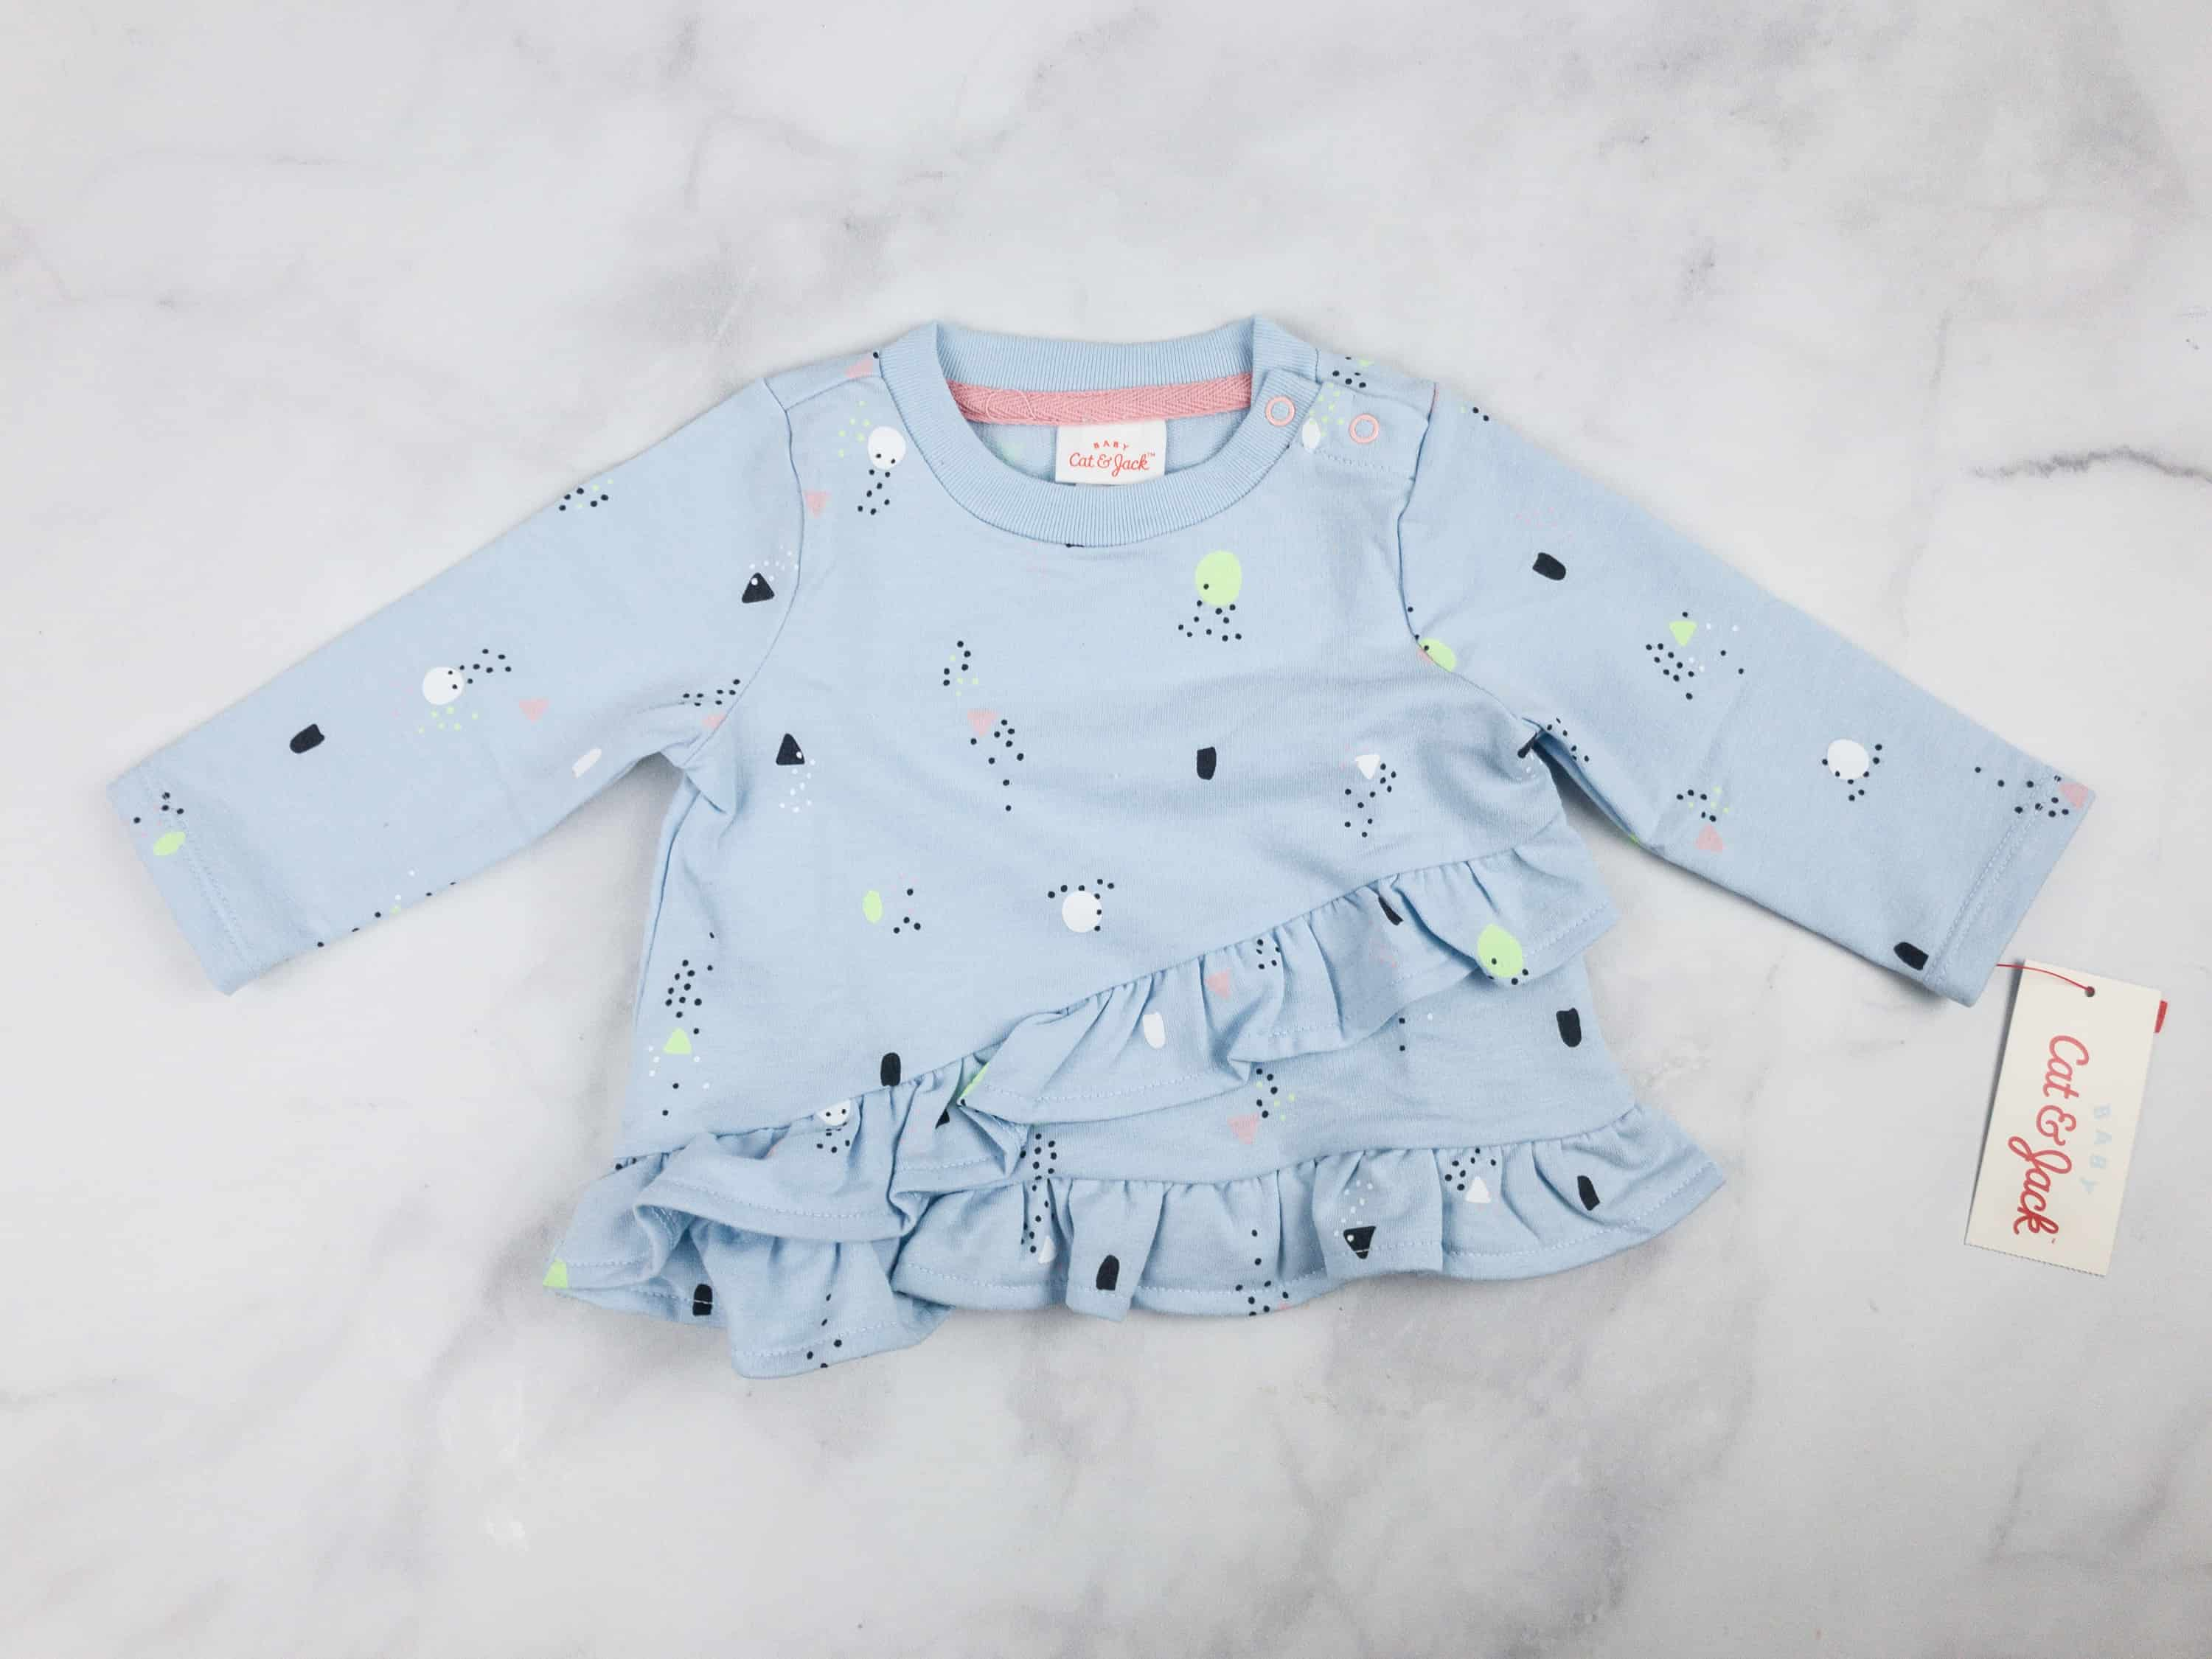 e5bbbd2b4b8c ... Set (est  9.99)This pair is composed of a long sleeved baby blue  sweatshirt top and peach leggings. The details are so cute! The top is  printed with ...